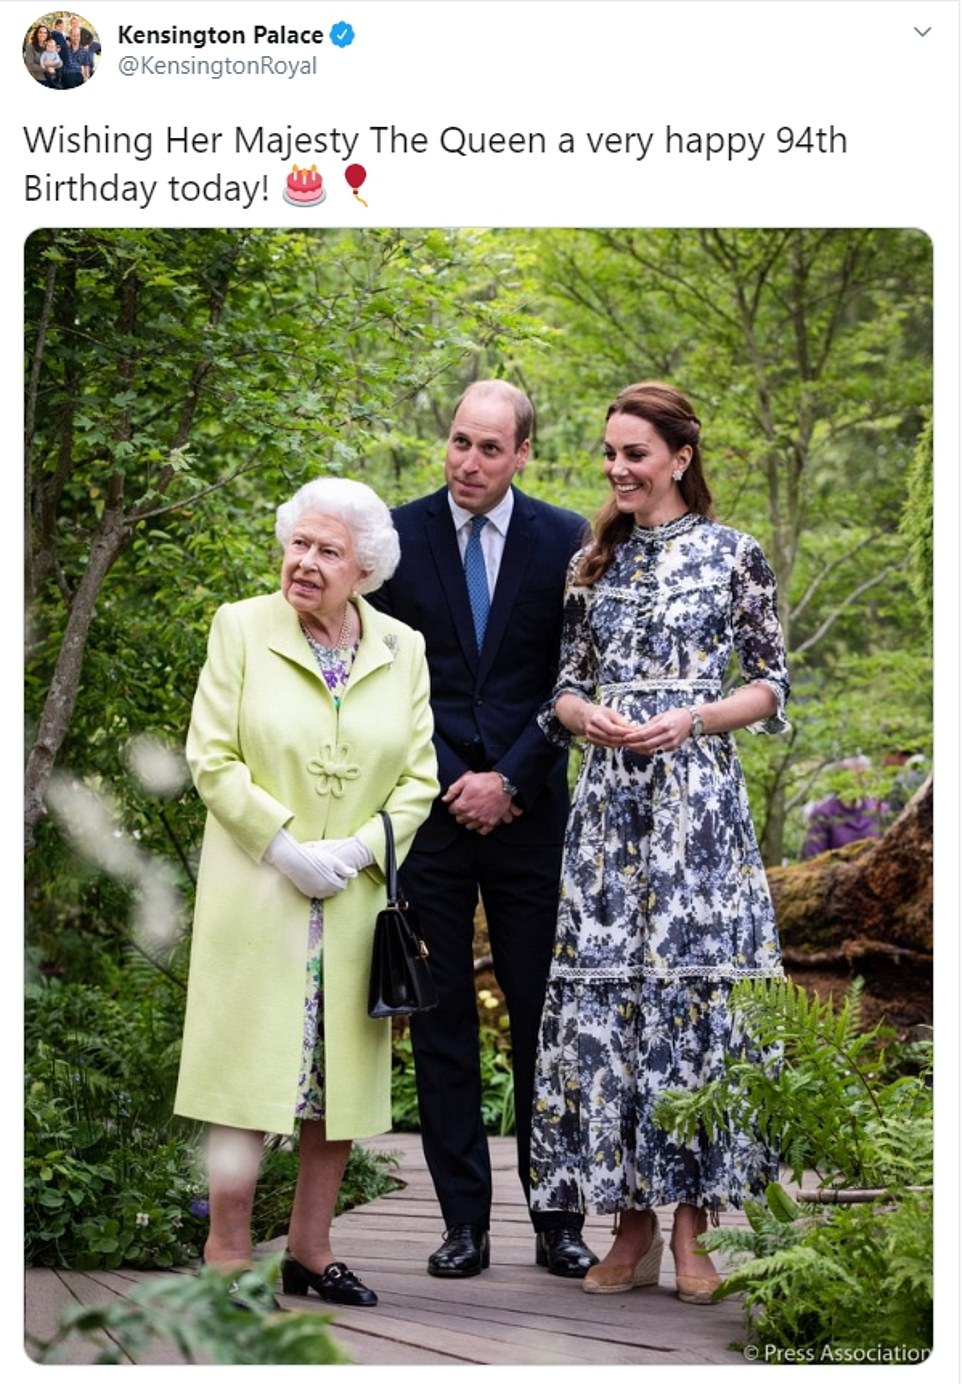 Kensington Palace wished the Queen a 'very happy 94th Birthday', and shared a picture of Prince William and Kate Middleton with the monarch at the Chelsea Flower Show